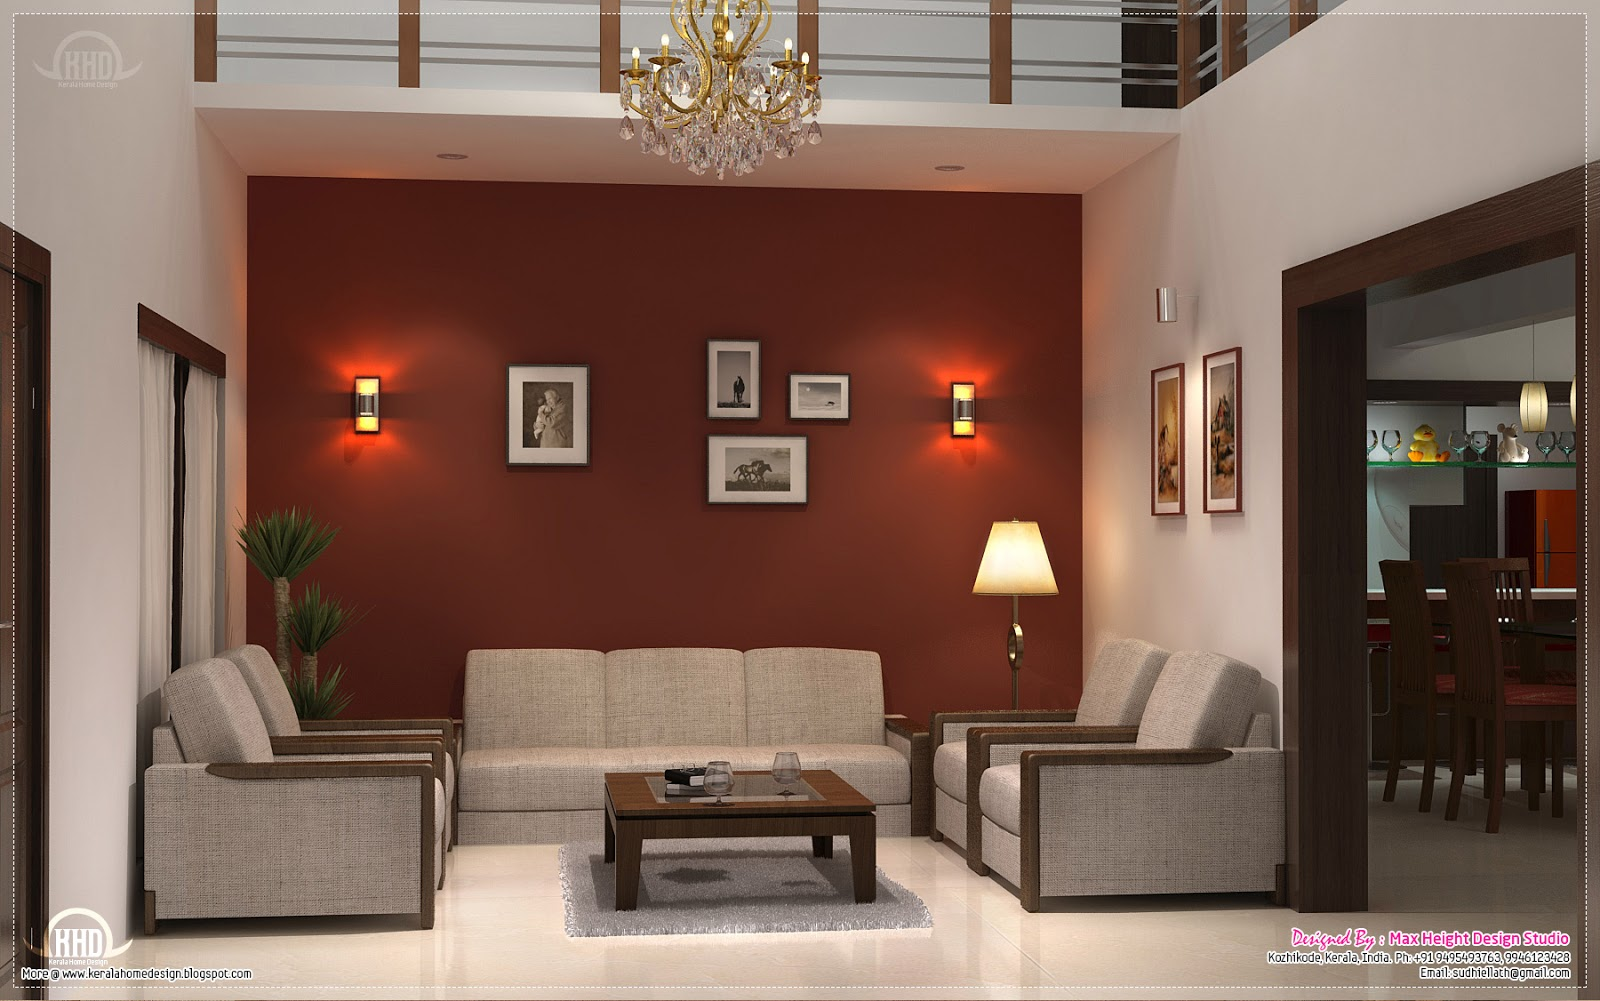 Home interior design ideas kerala home design and floor Pictures of new homes interior